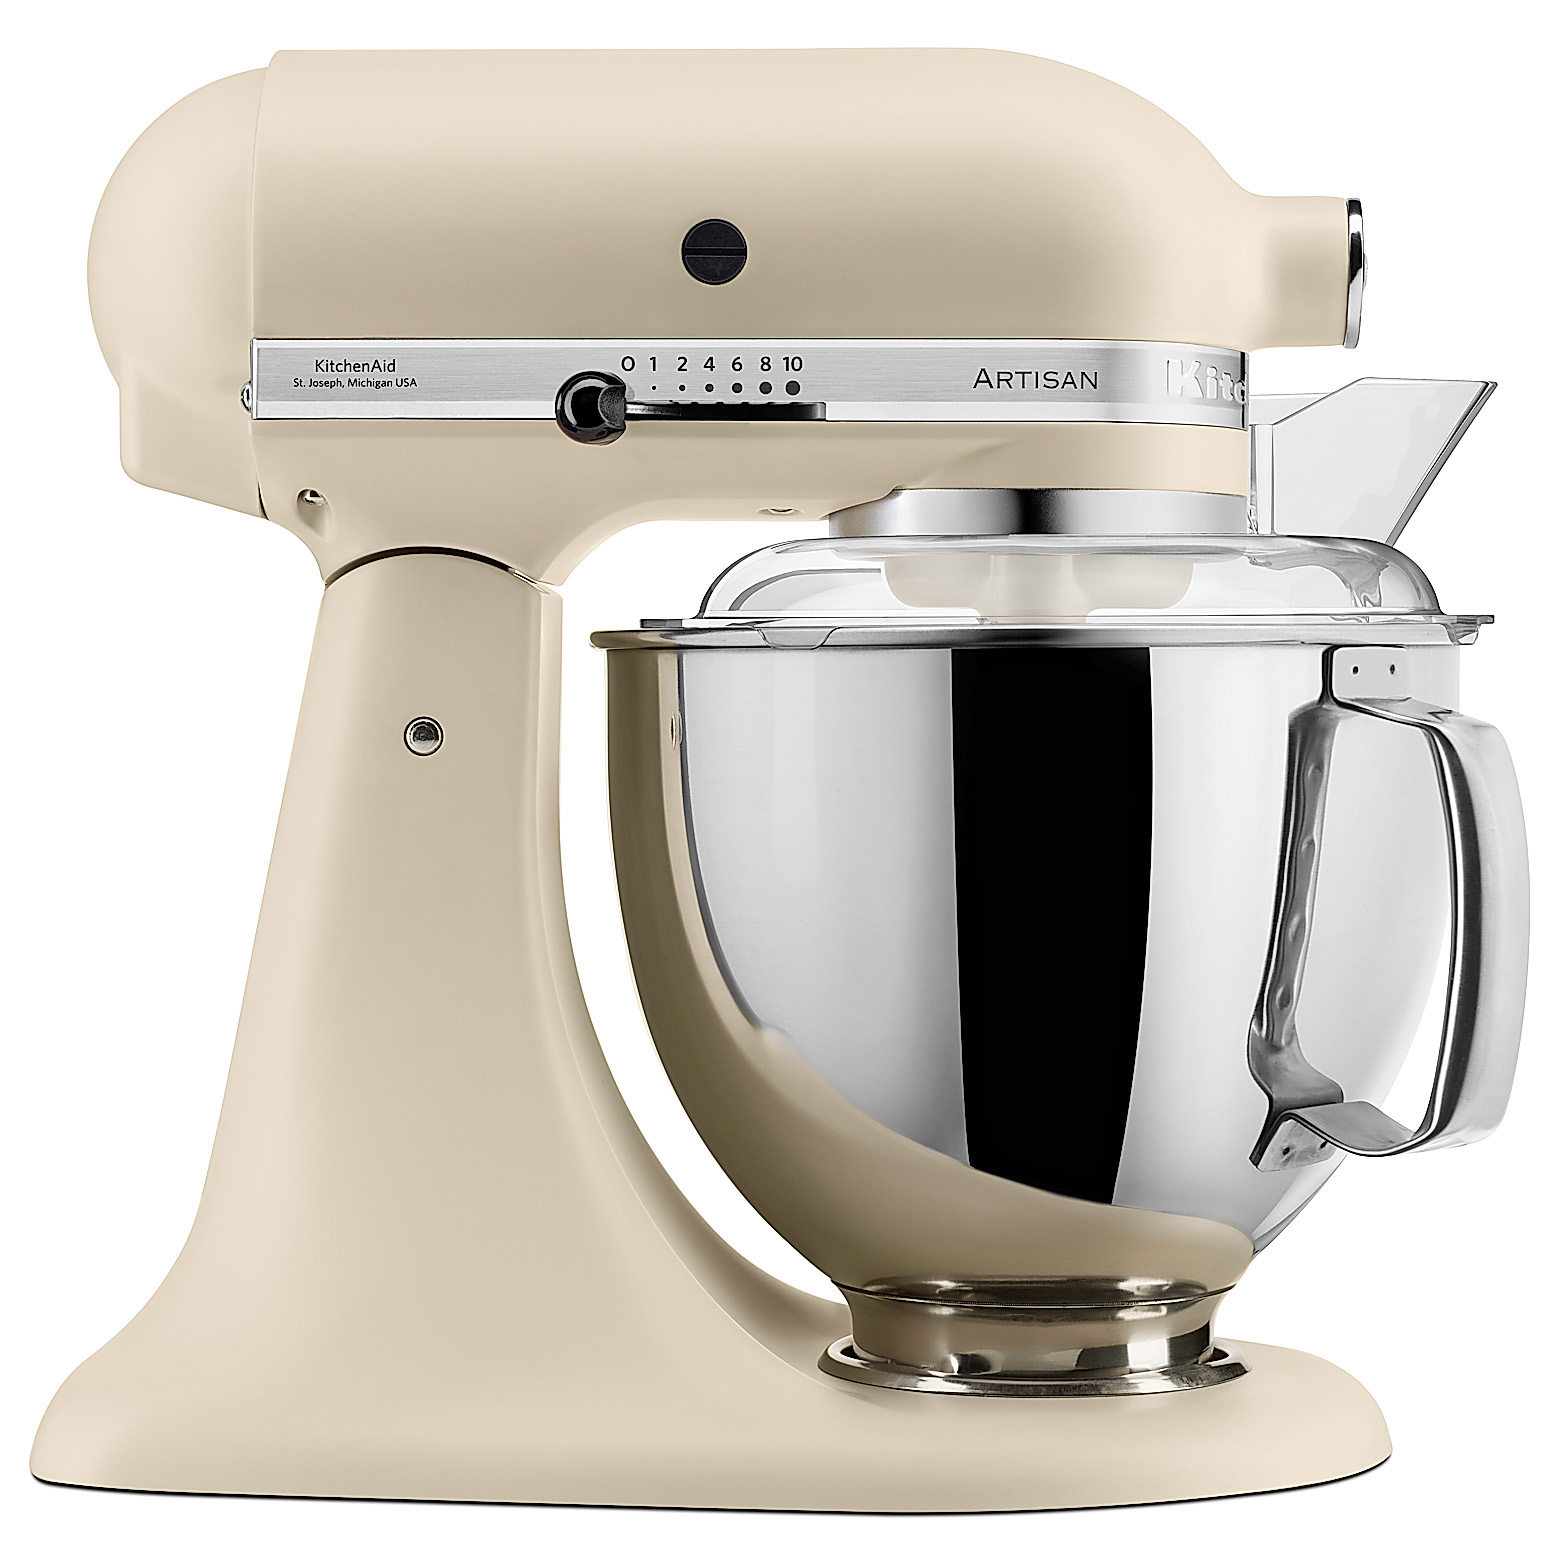 Artisan tilt head stand mixer, KitchenAid, £419